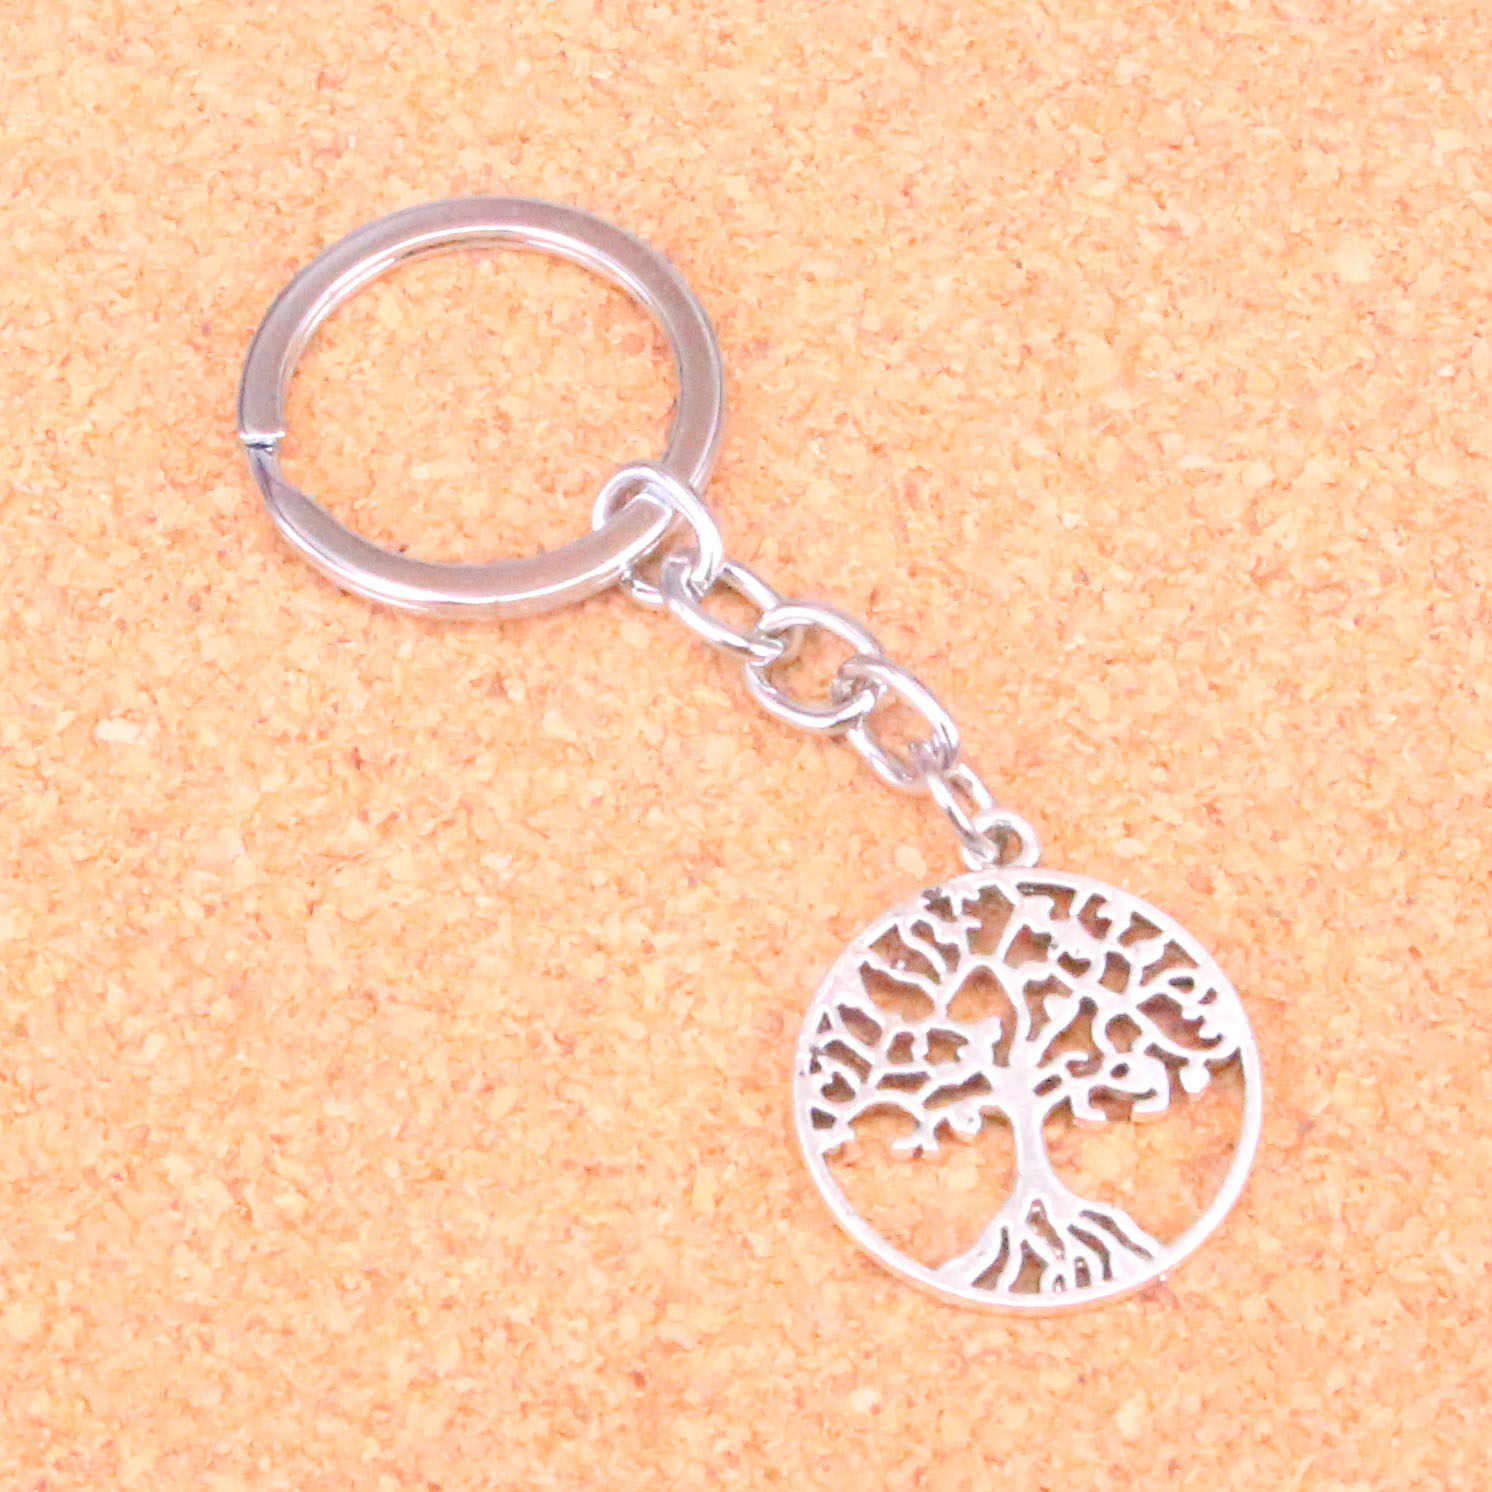 e5dbf85e39 Tree of life Keychain Key Ring Metal Key Holder For Gift Chaveiro Key chain  Jewelry for